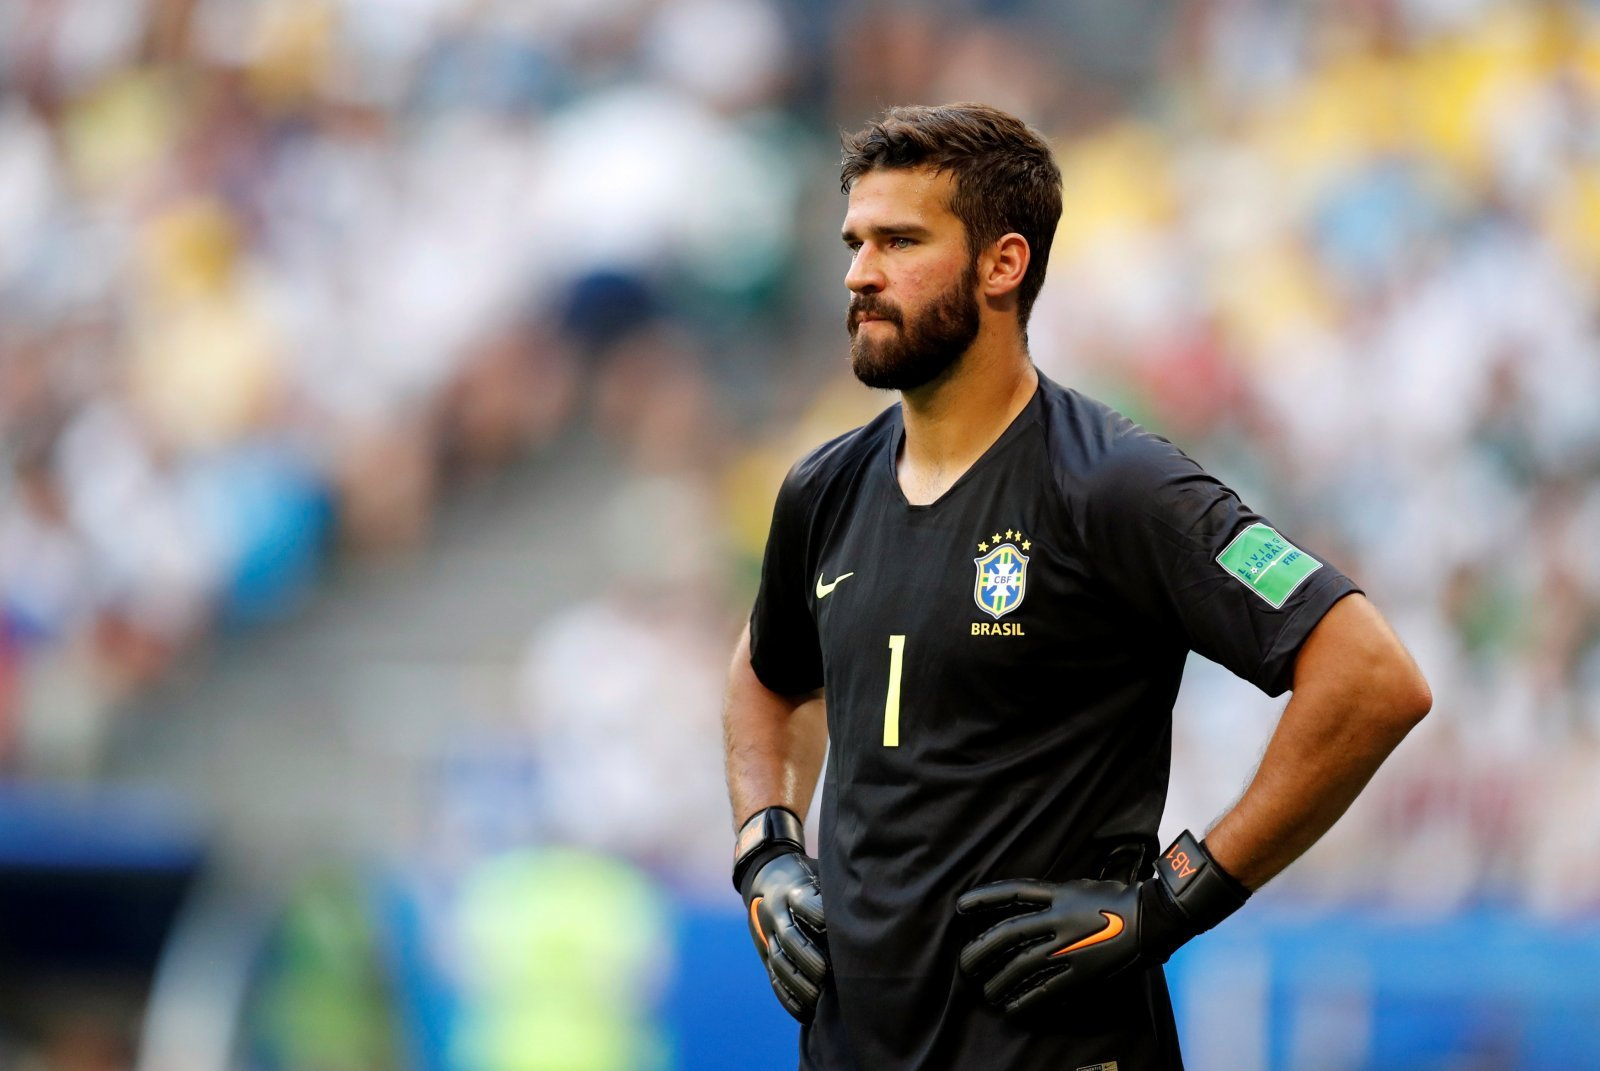 Alisson Becker continues to inspire Liverpool fans on Twitter